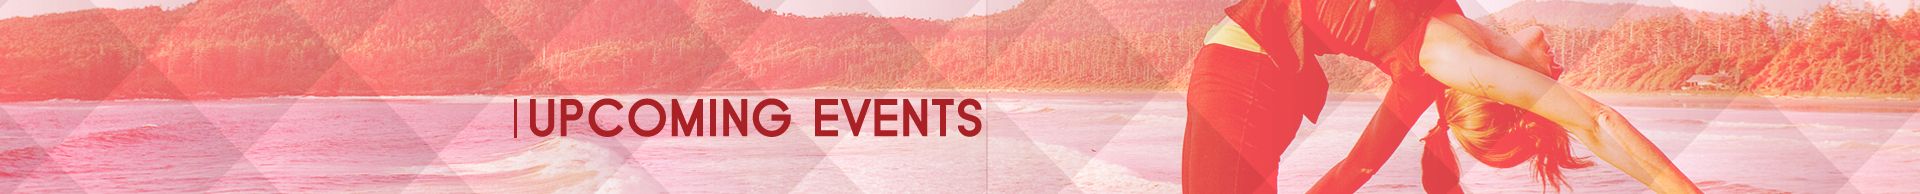 events_02